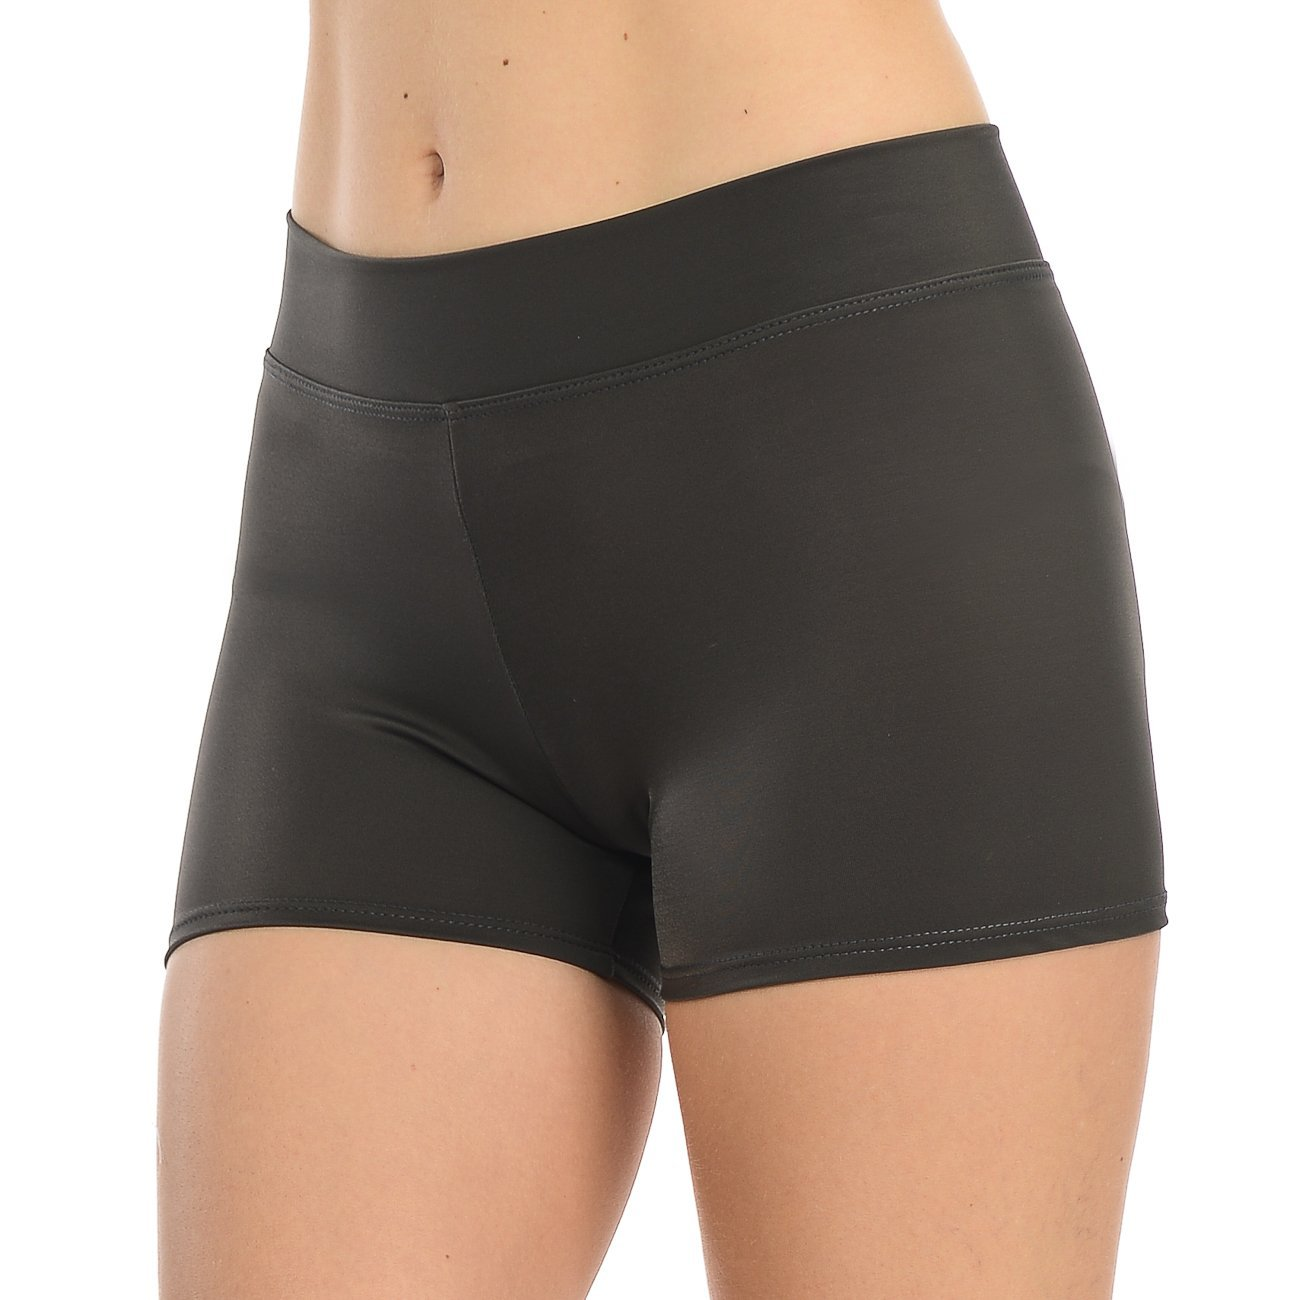 ANZA Girls Active Wear Dance Booty Shorts-Charcoal,X-Small(2/4) by Anza Collection